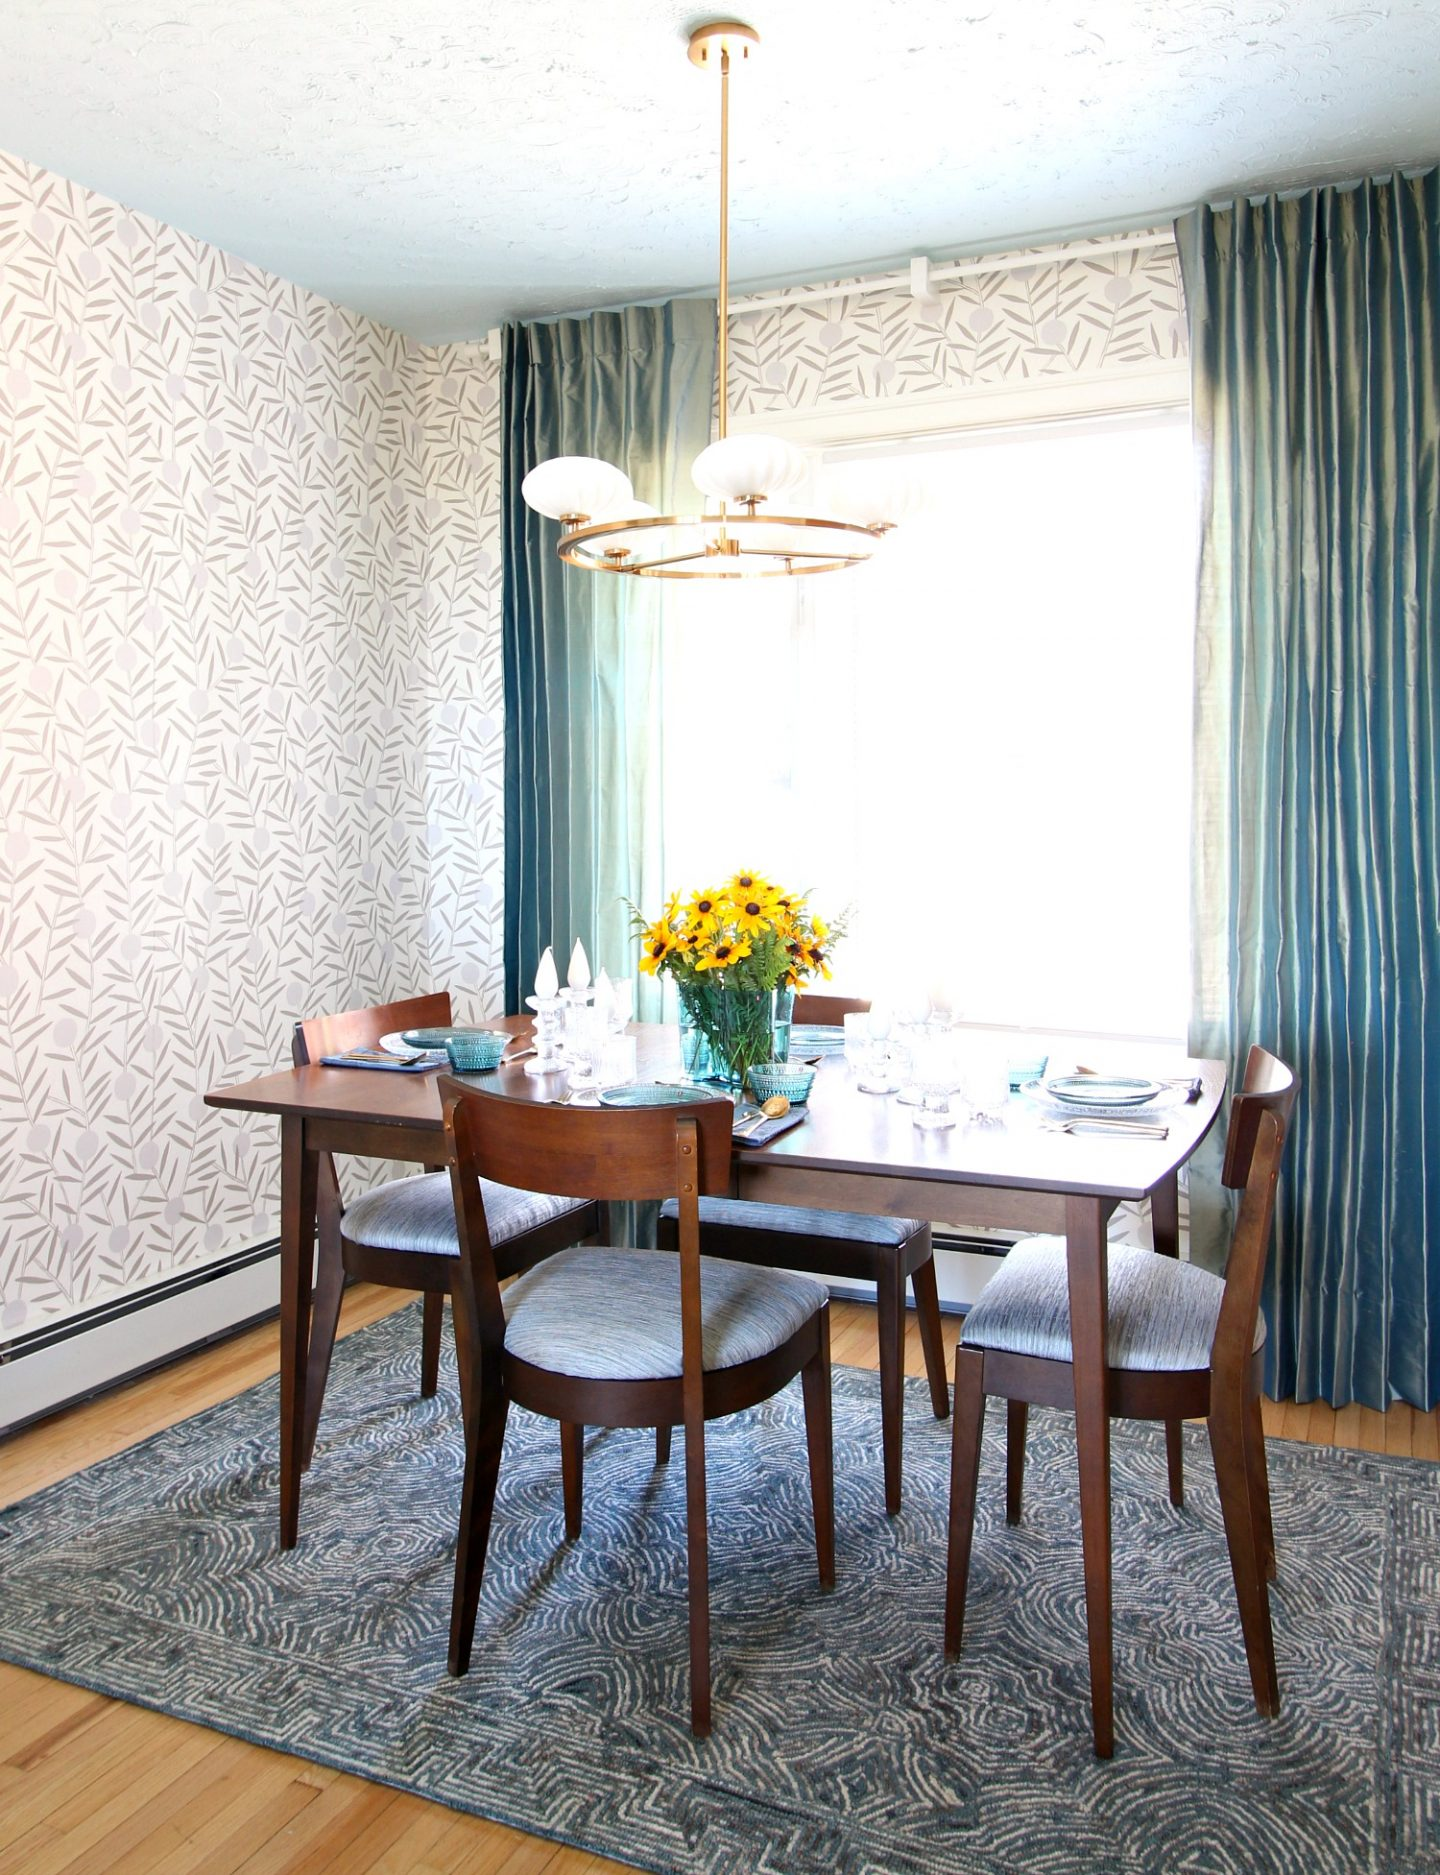 How to Hang Hygge & West Wallpapers